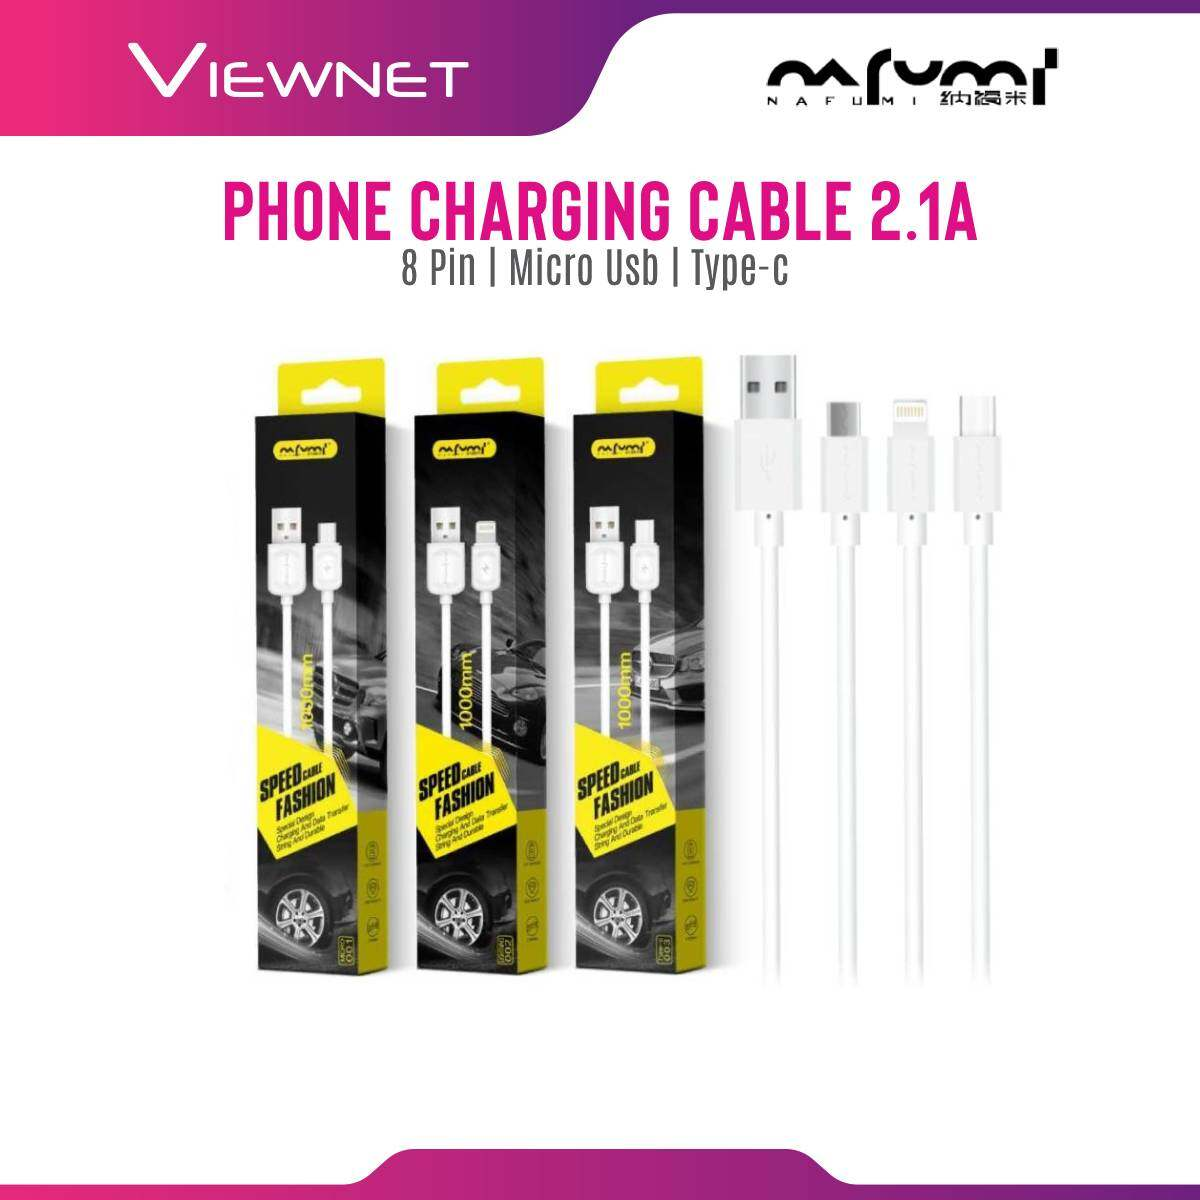 Nafumi Micro USB / Apple 8 Pin / Type-C Fast Charging 2.1A 1000mm Cable (001/002/003)